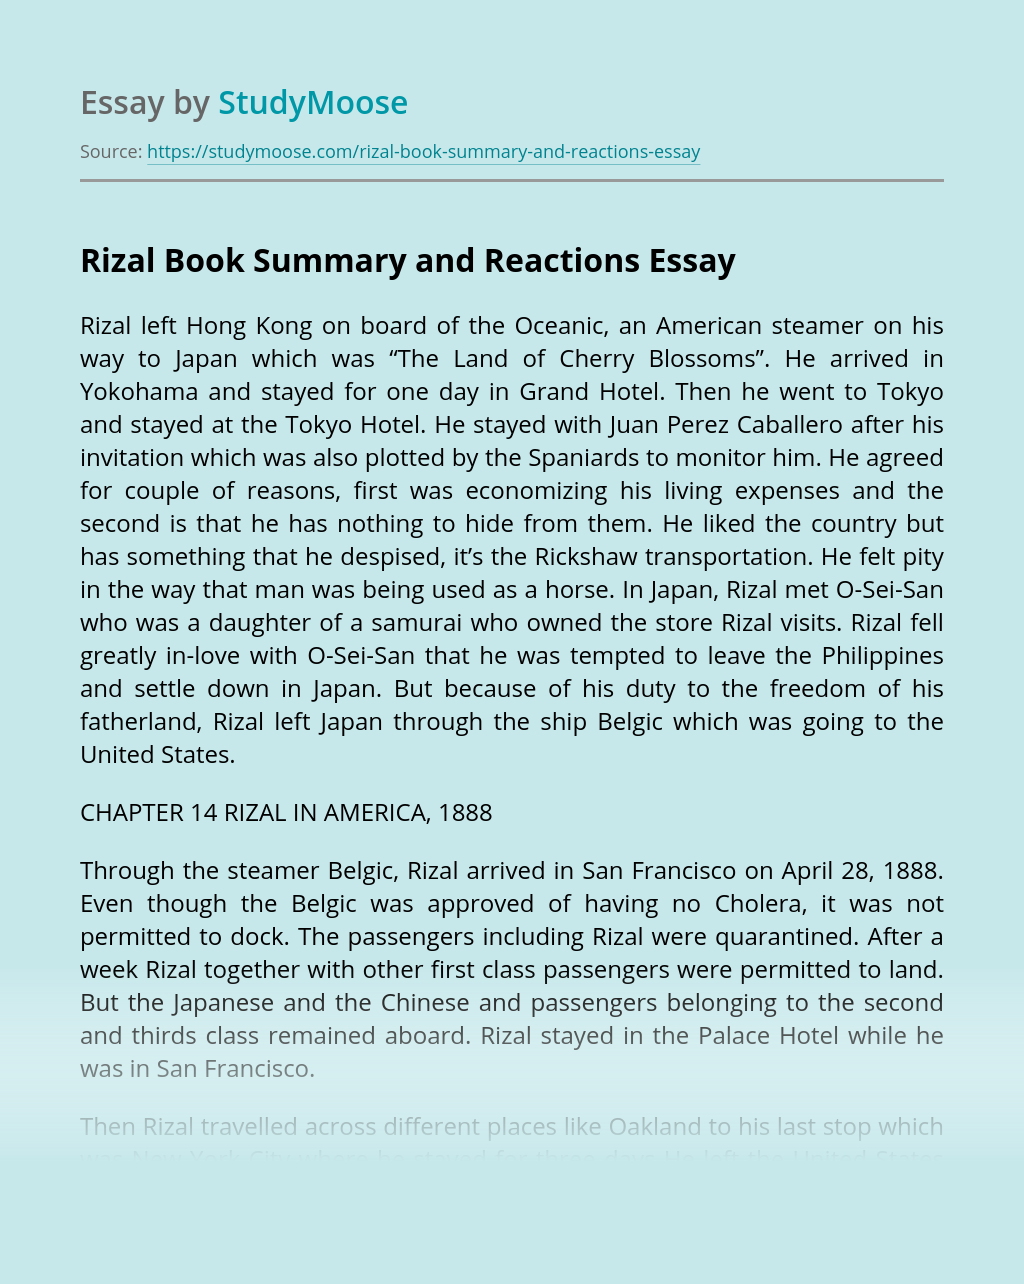 Rizal Book Summary and Reactions